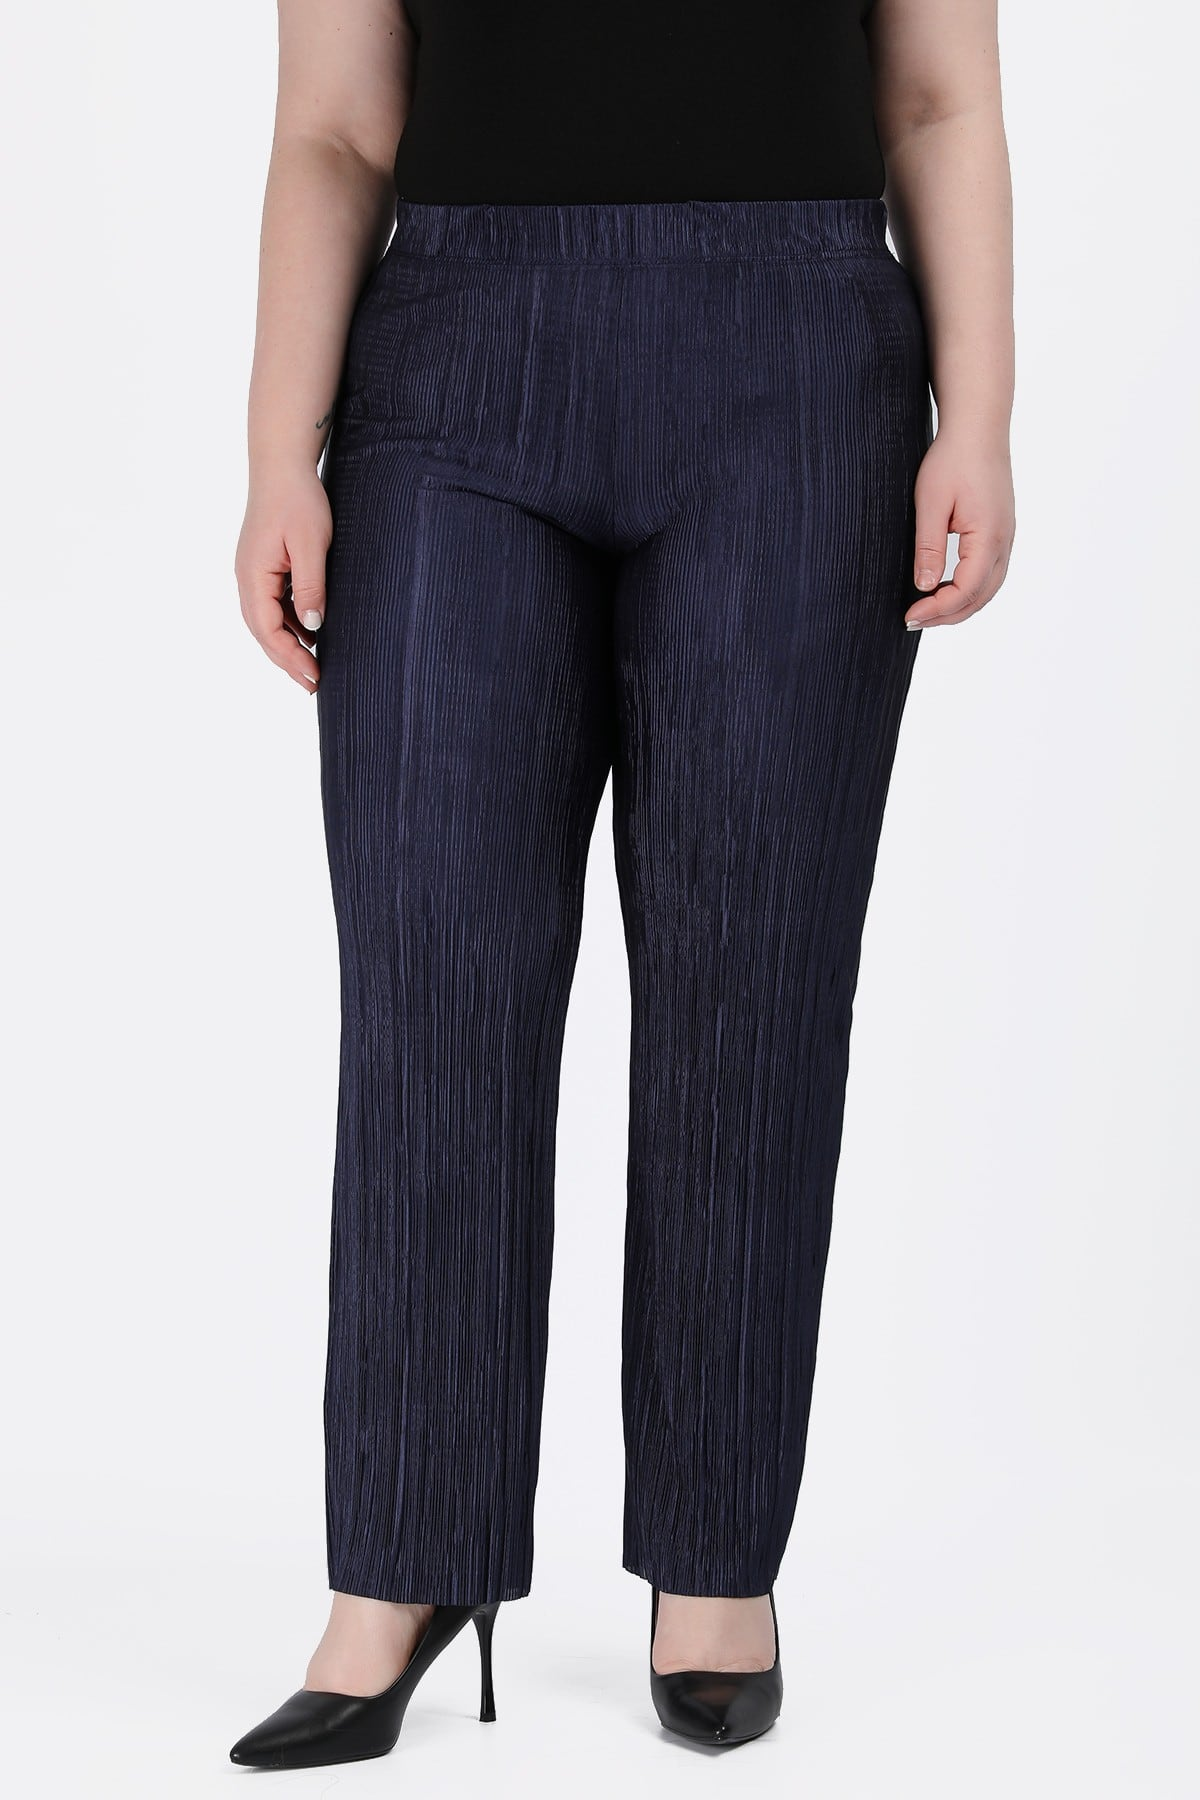 Αccordion pleated trousers from shiny texture